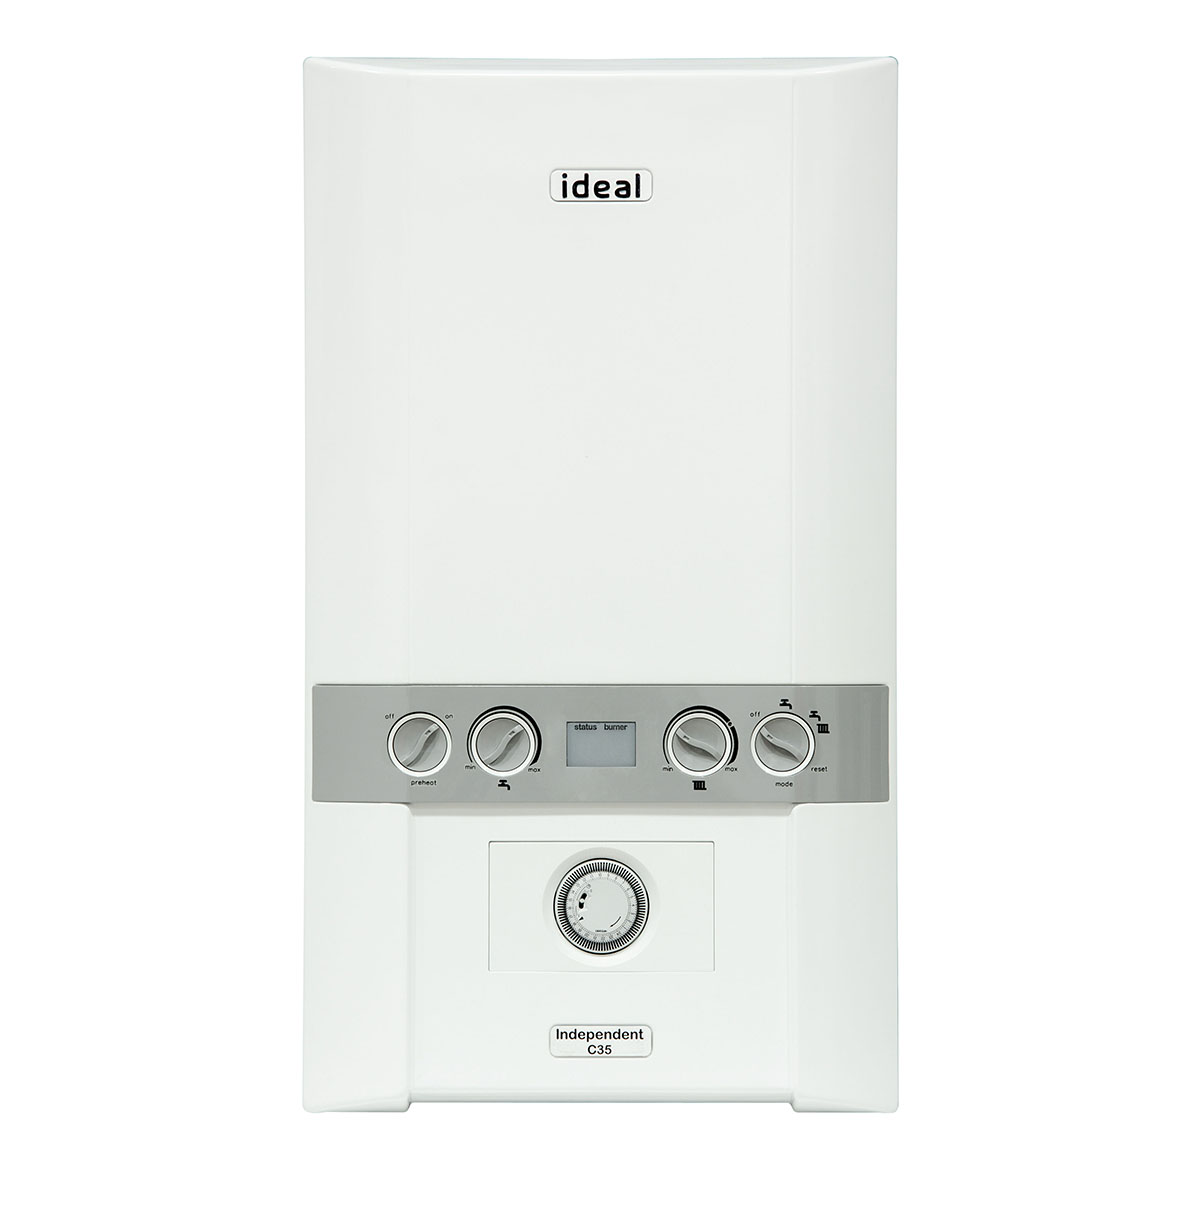 https://www.mepstock.co.uk/admin/images/Ideal_Independent_C30_ErP_Combi_Boiler_Only_with_Built_in_Clock_MEP100740..jpg